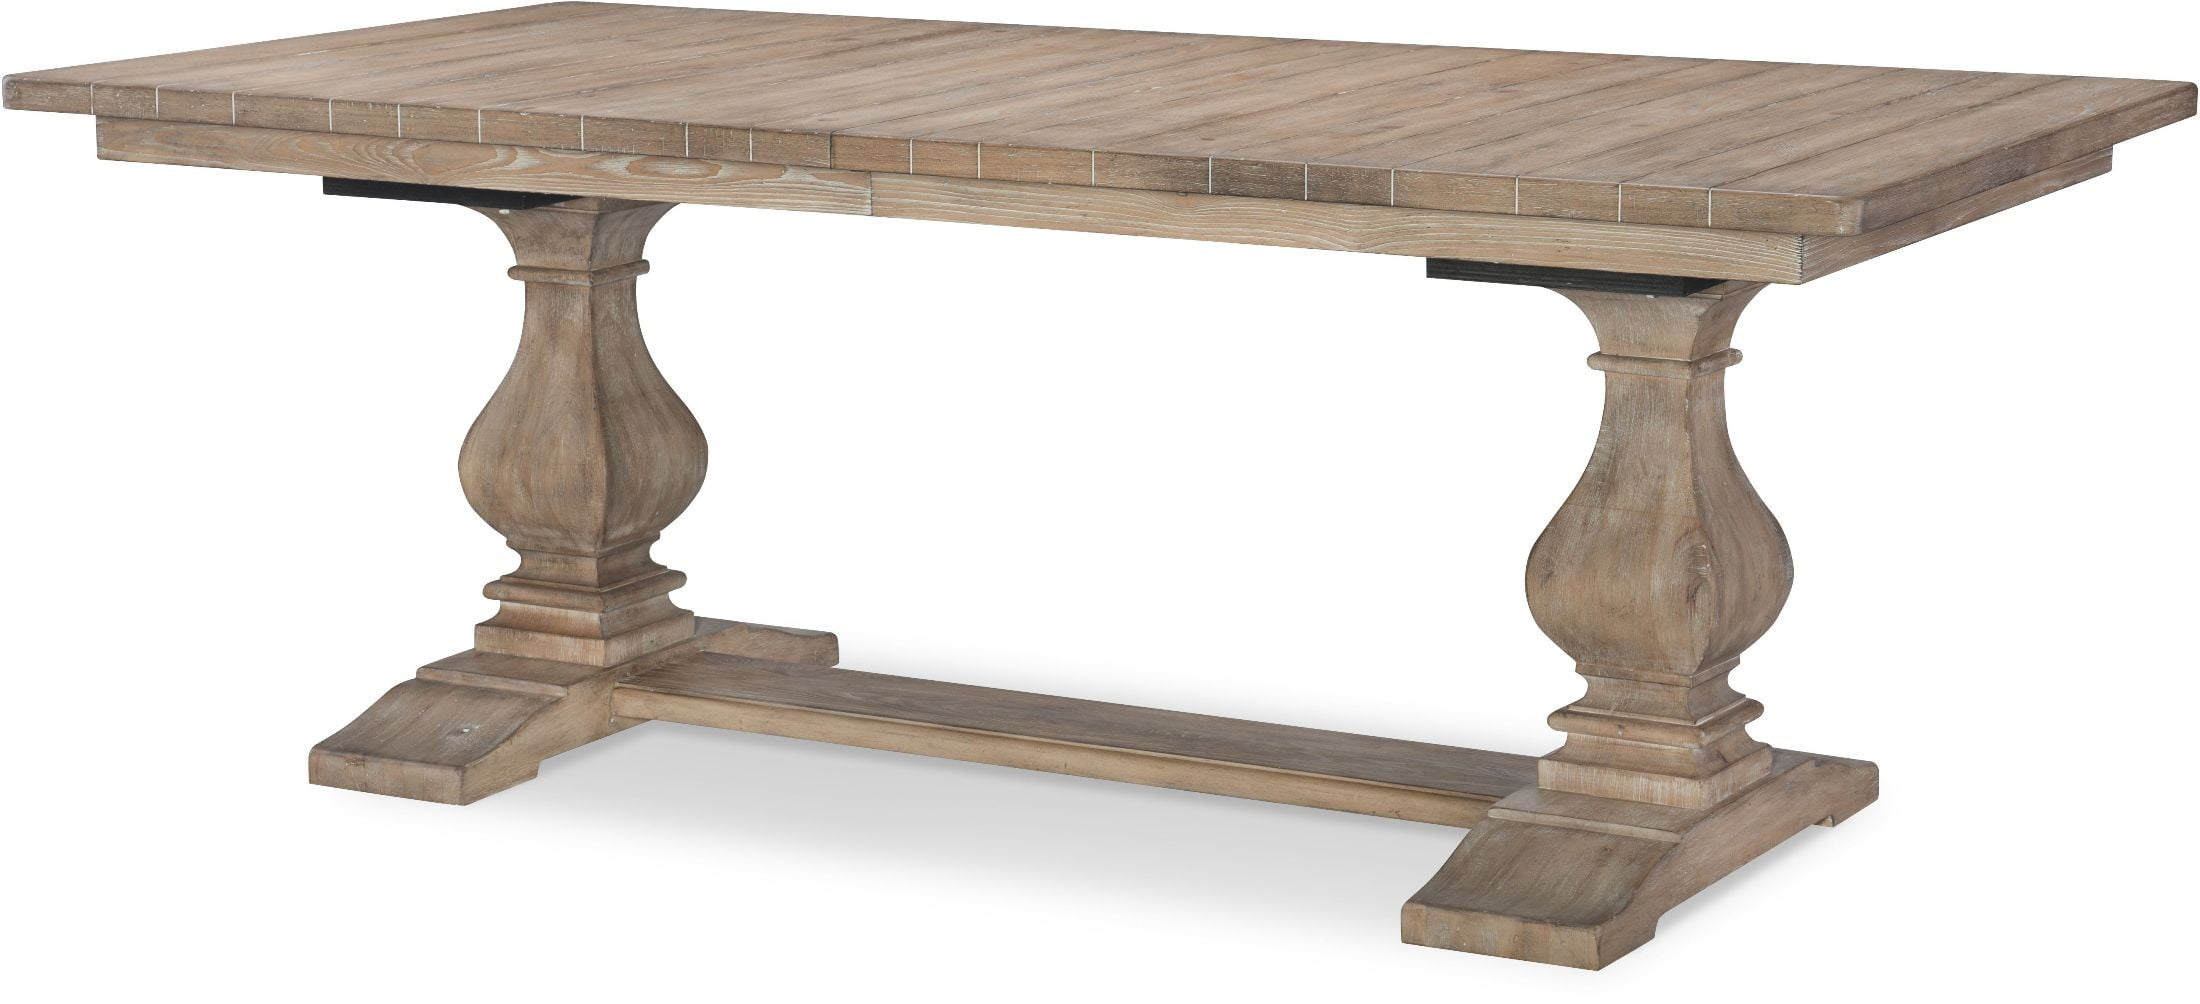 Monteverdi Sun Bleached Cypress Rectangular Trestle Dining Table From  Rachael Ray Home | Coleman Furniture